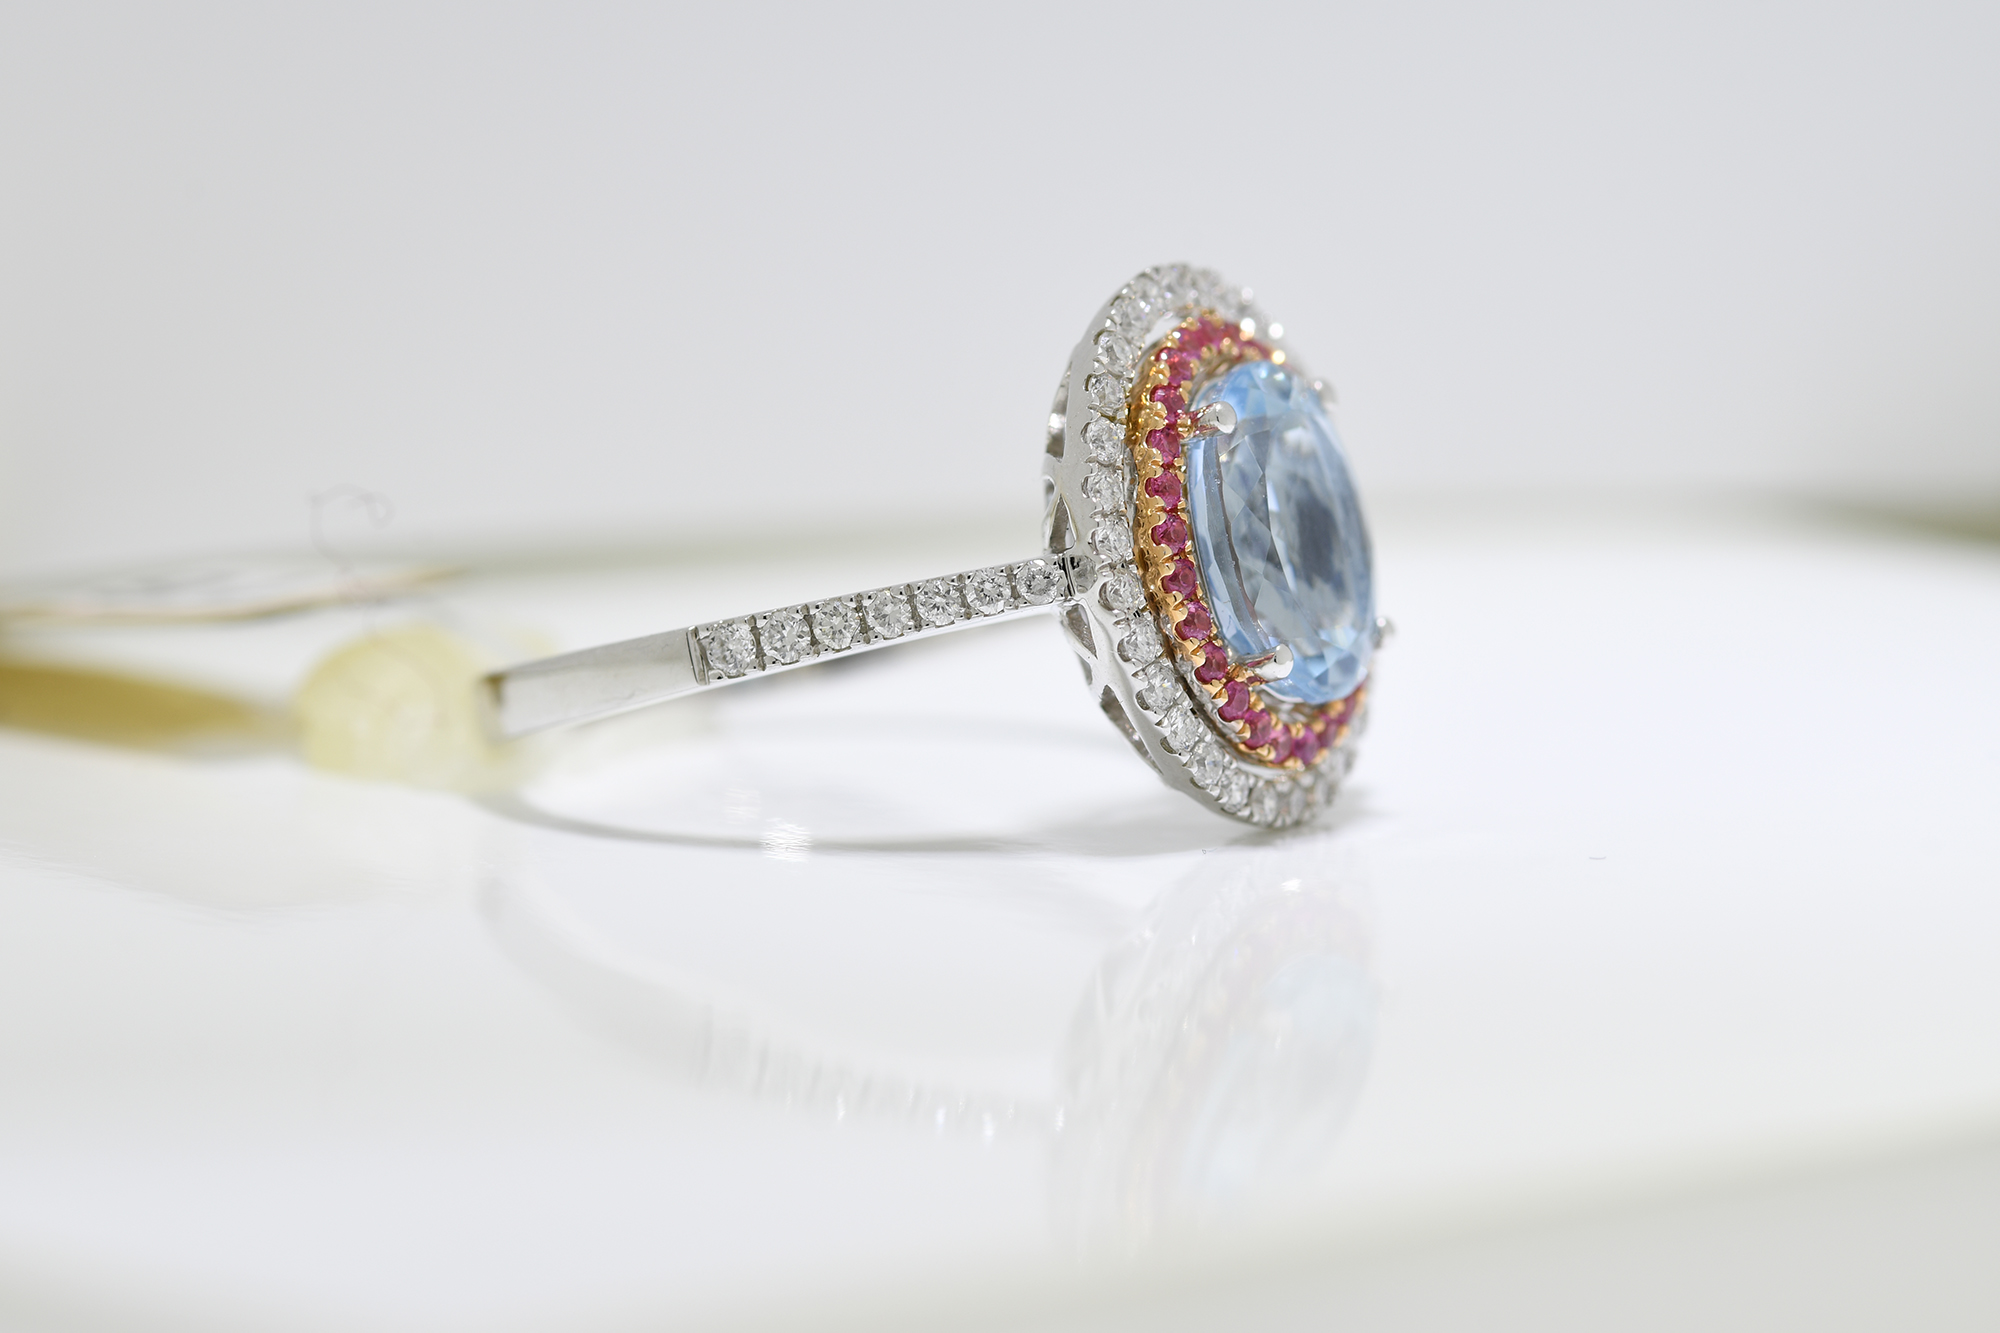 Aquamarine, Pink Sapphire & Diamond Ring - Image 2 of 3